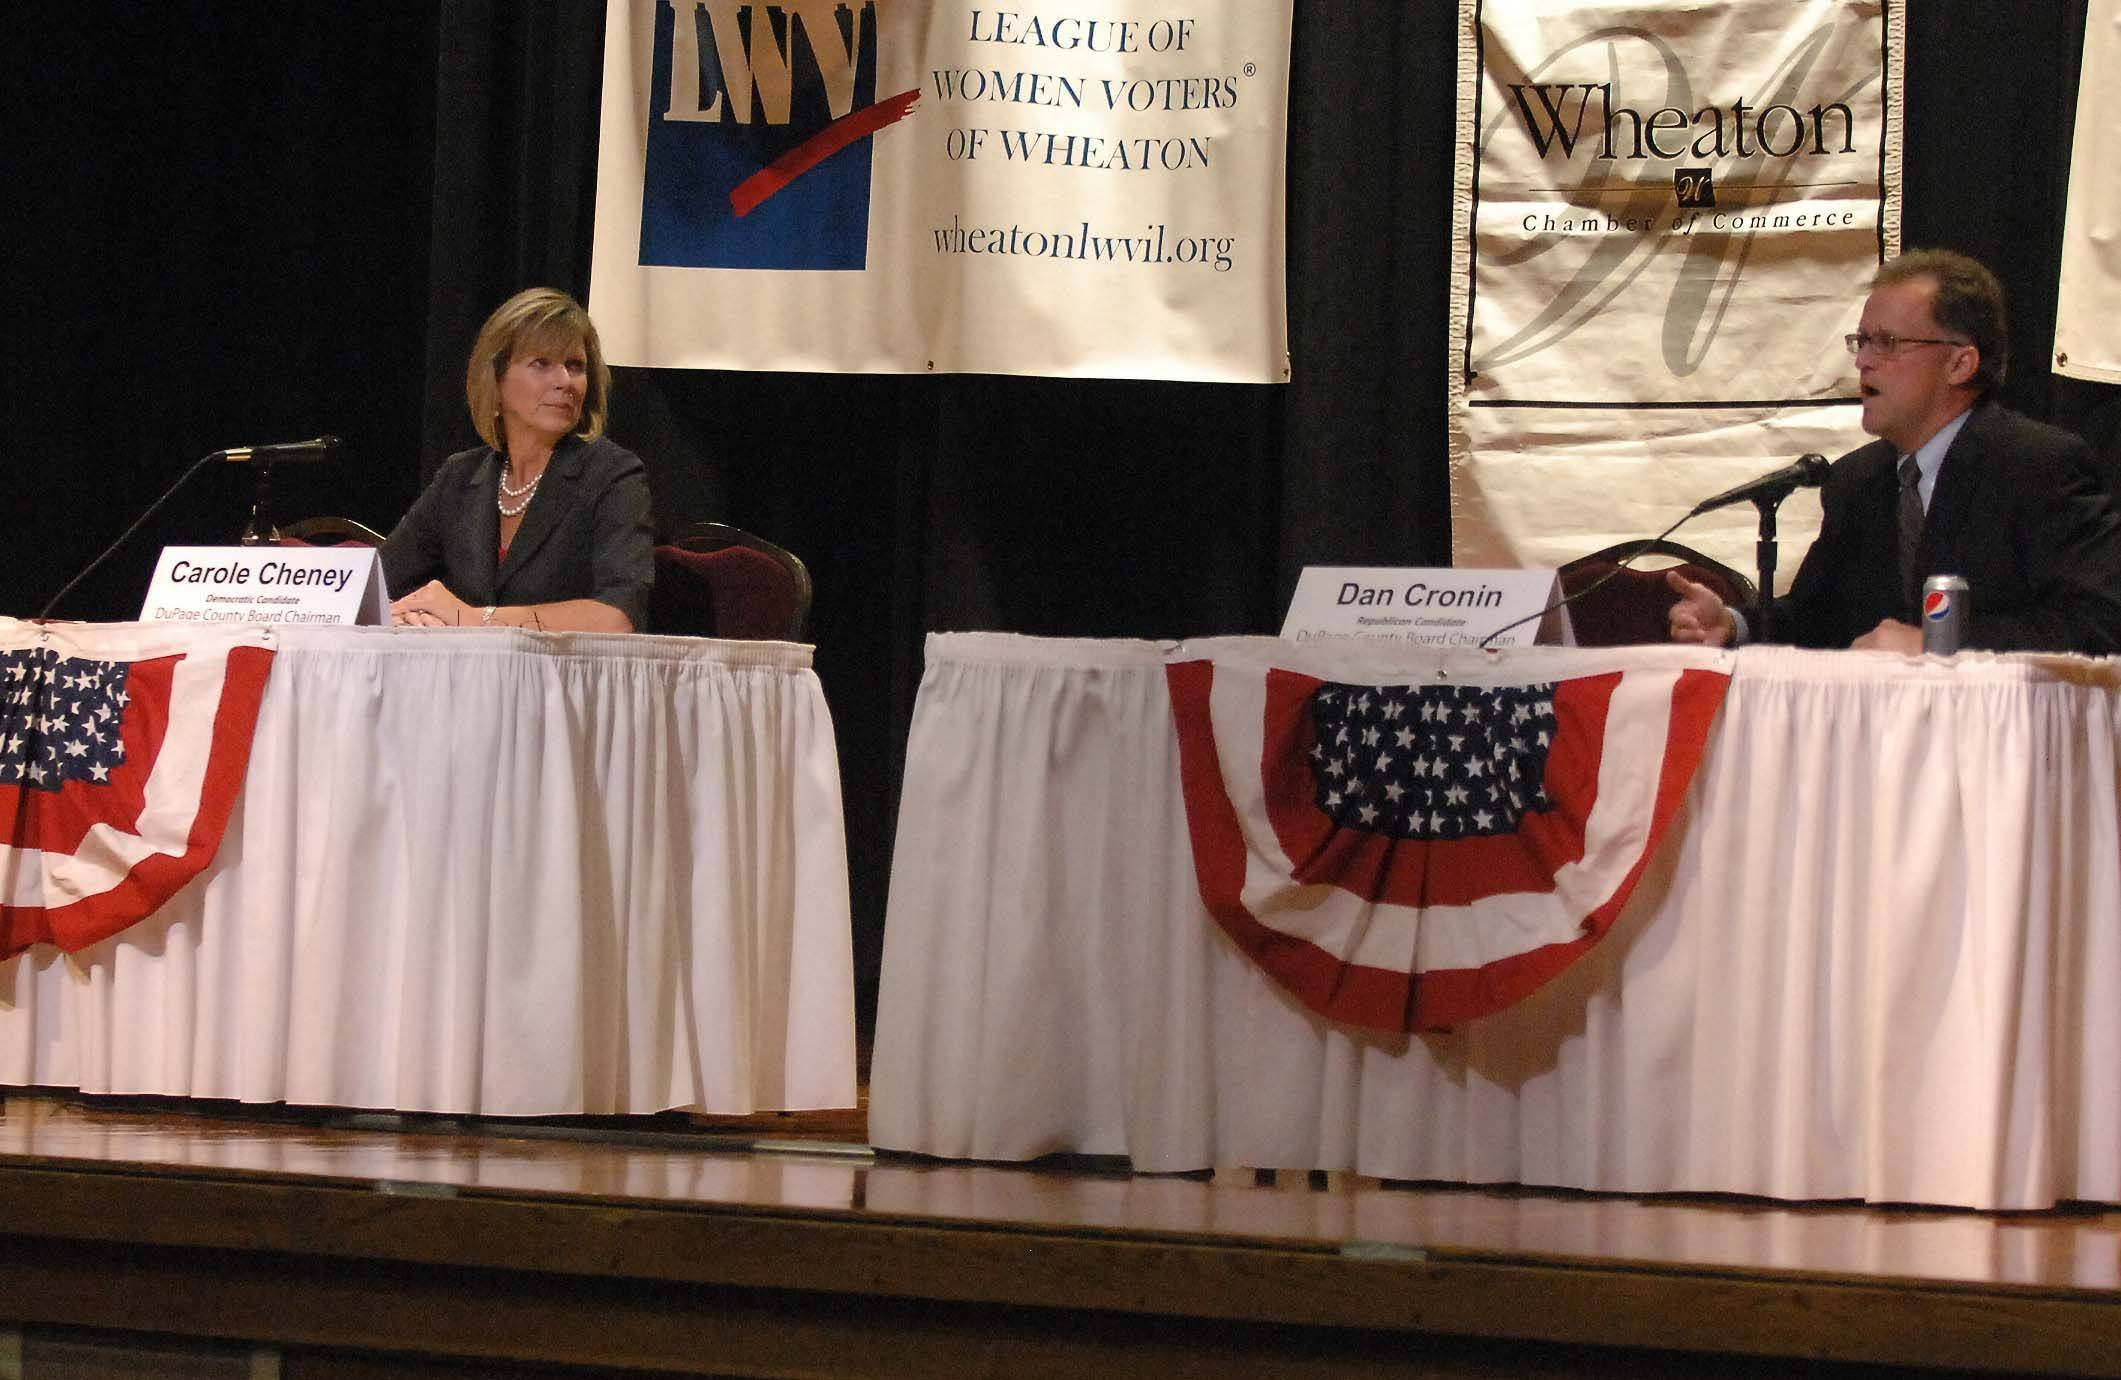 Candidates for DuPage County Board chairman  Democrat Carole Cheney and Republican Dan Cronin  participate in a candidate forum organized by the League of Women Voters in Glen Ellyn and Wheaton and the Wheaton Chamber of Commerce.